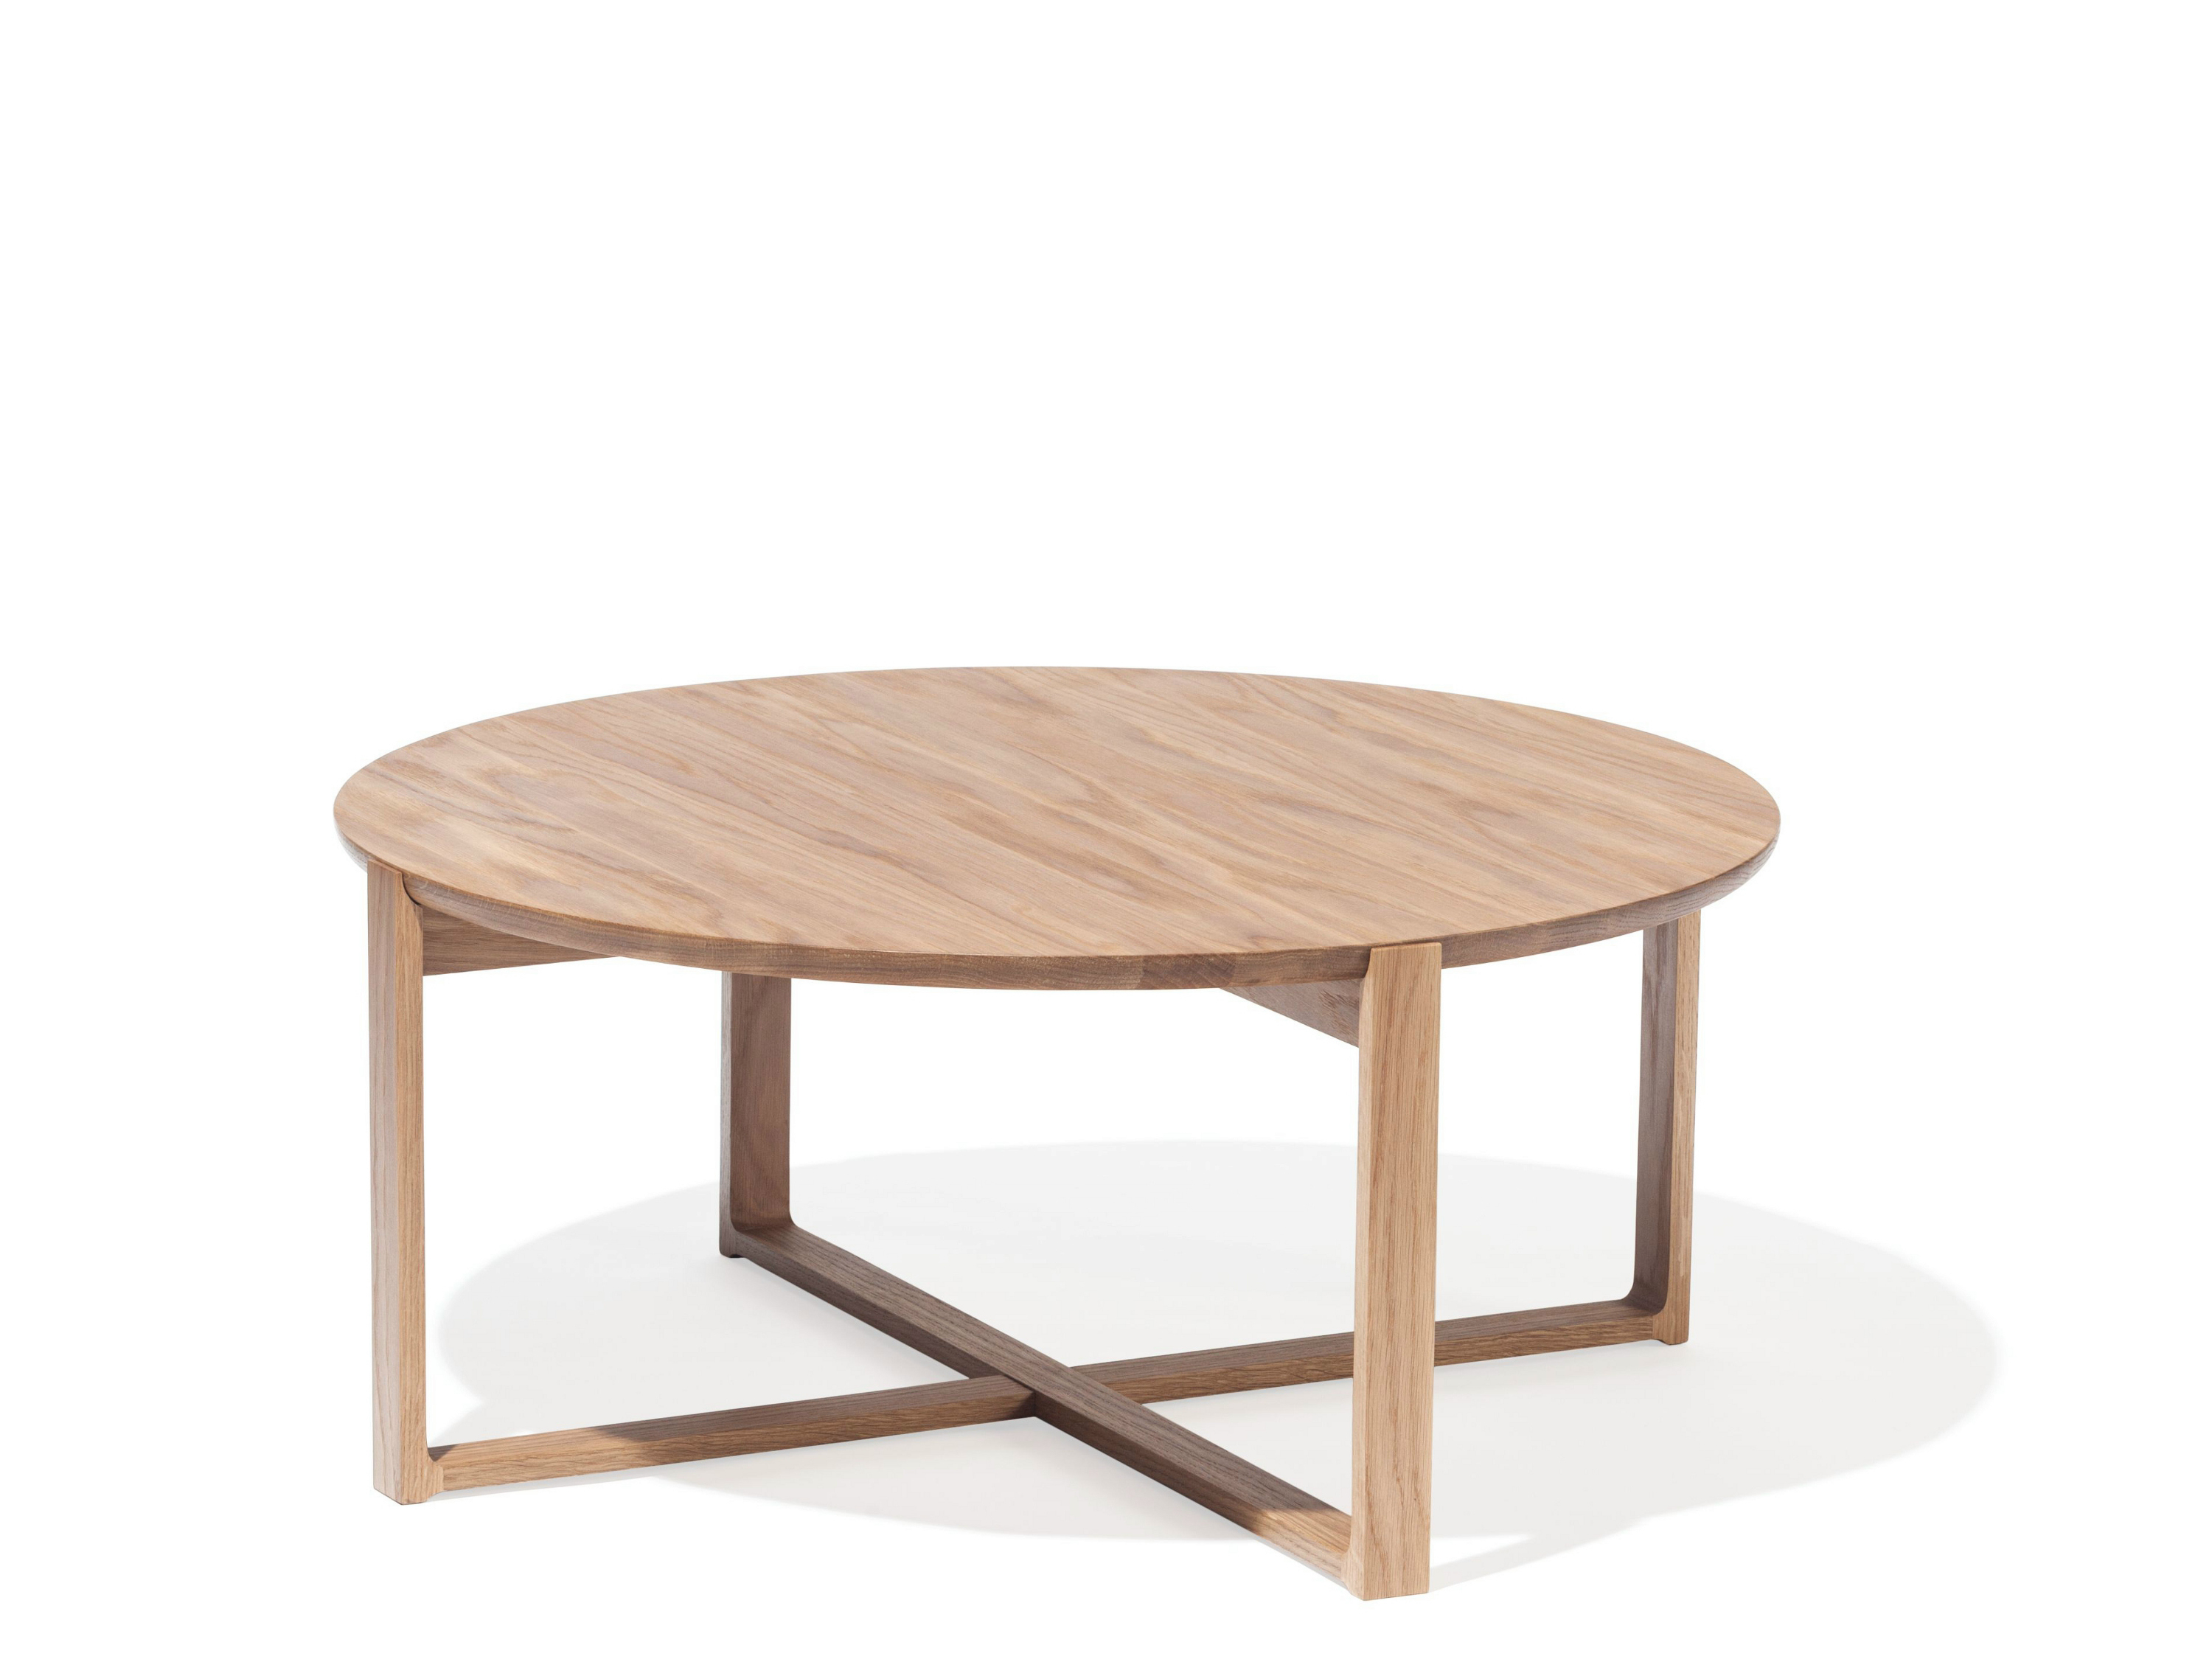 Delta coffee low coffee table by ton design kai stania for Low coffee table wood